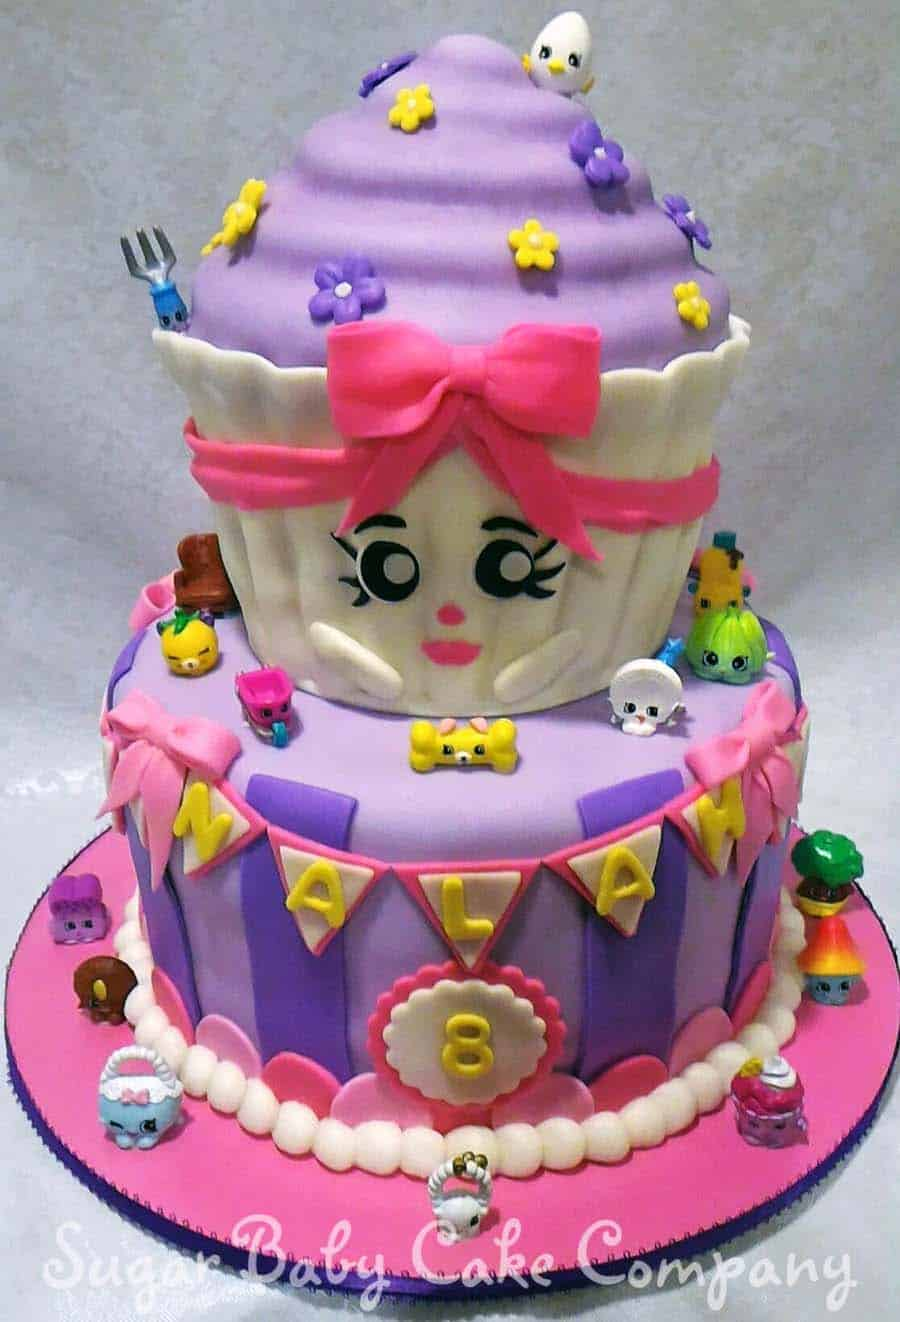 shopkins birthday cake - kids birthday cake ideas